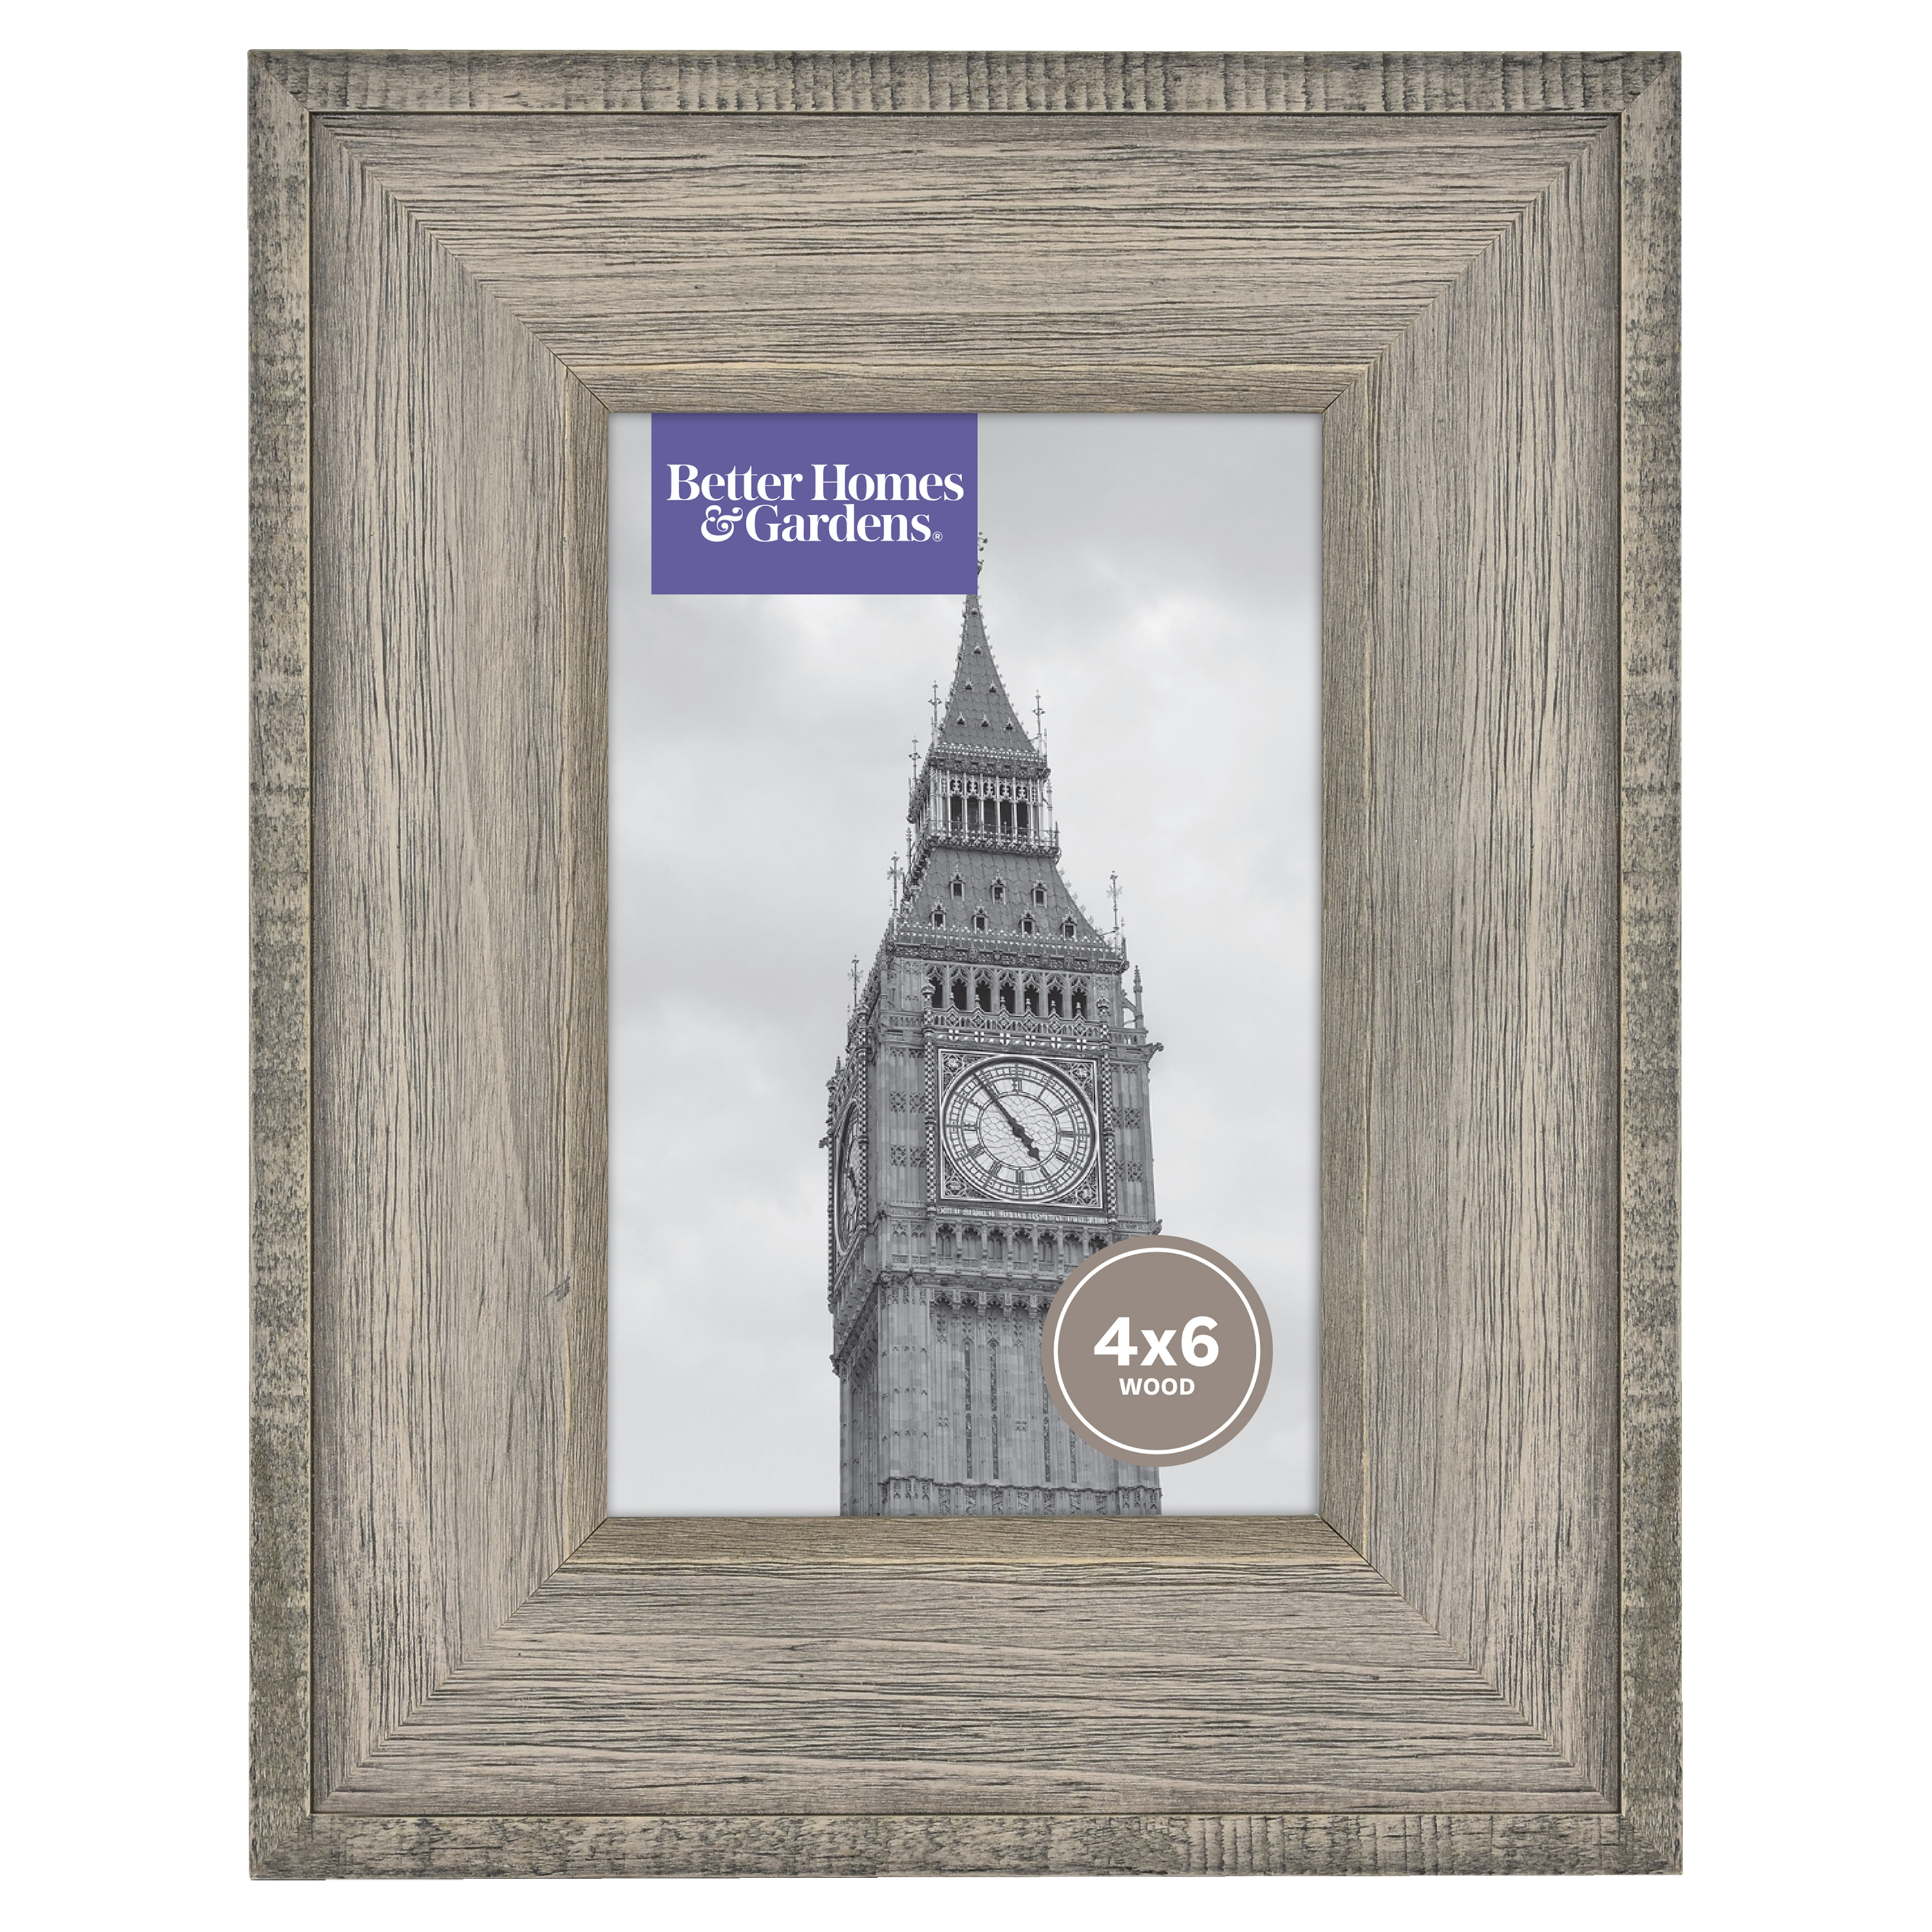 "Better Homes & Gardens 4"" x 6"" Gallery Frame, Rustic Wood"